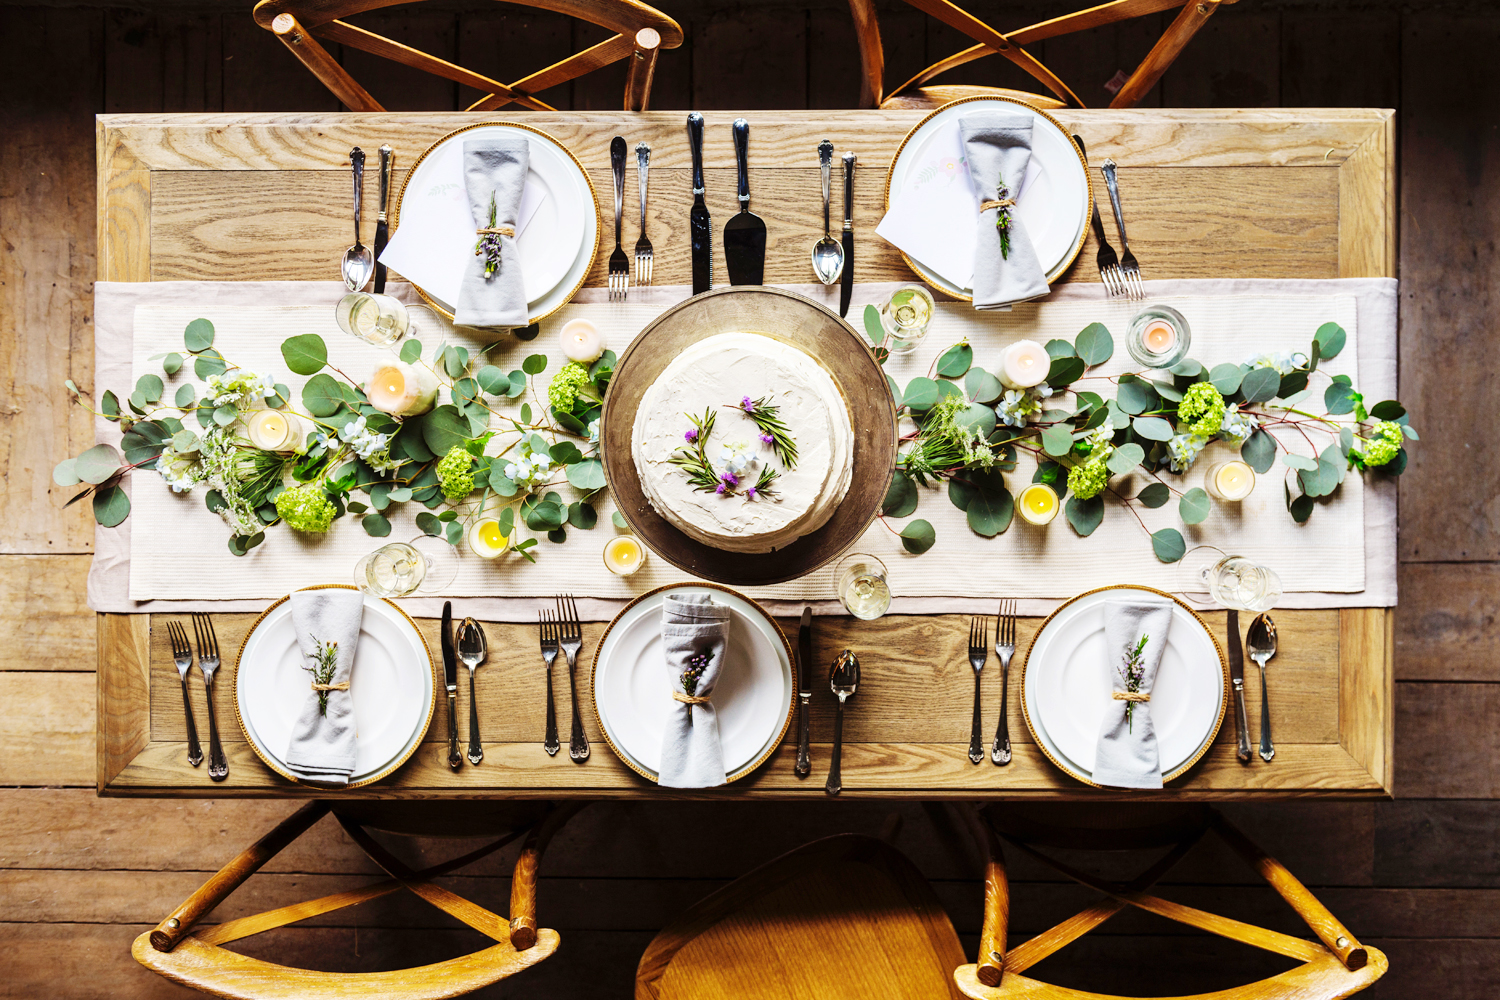 Setting a dinner table with reusable plates and silverware goes a long way to making all your holiday dinners less wasteful and more environmentally friendly.